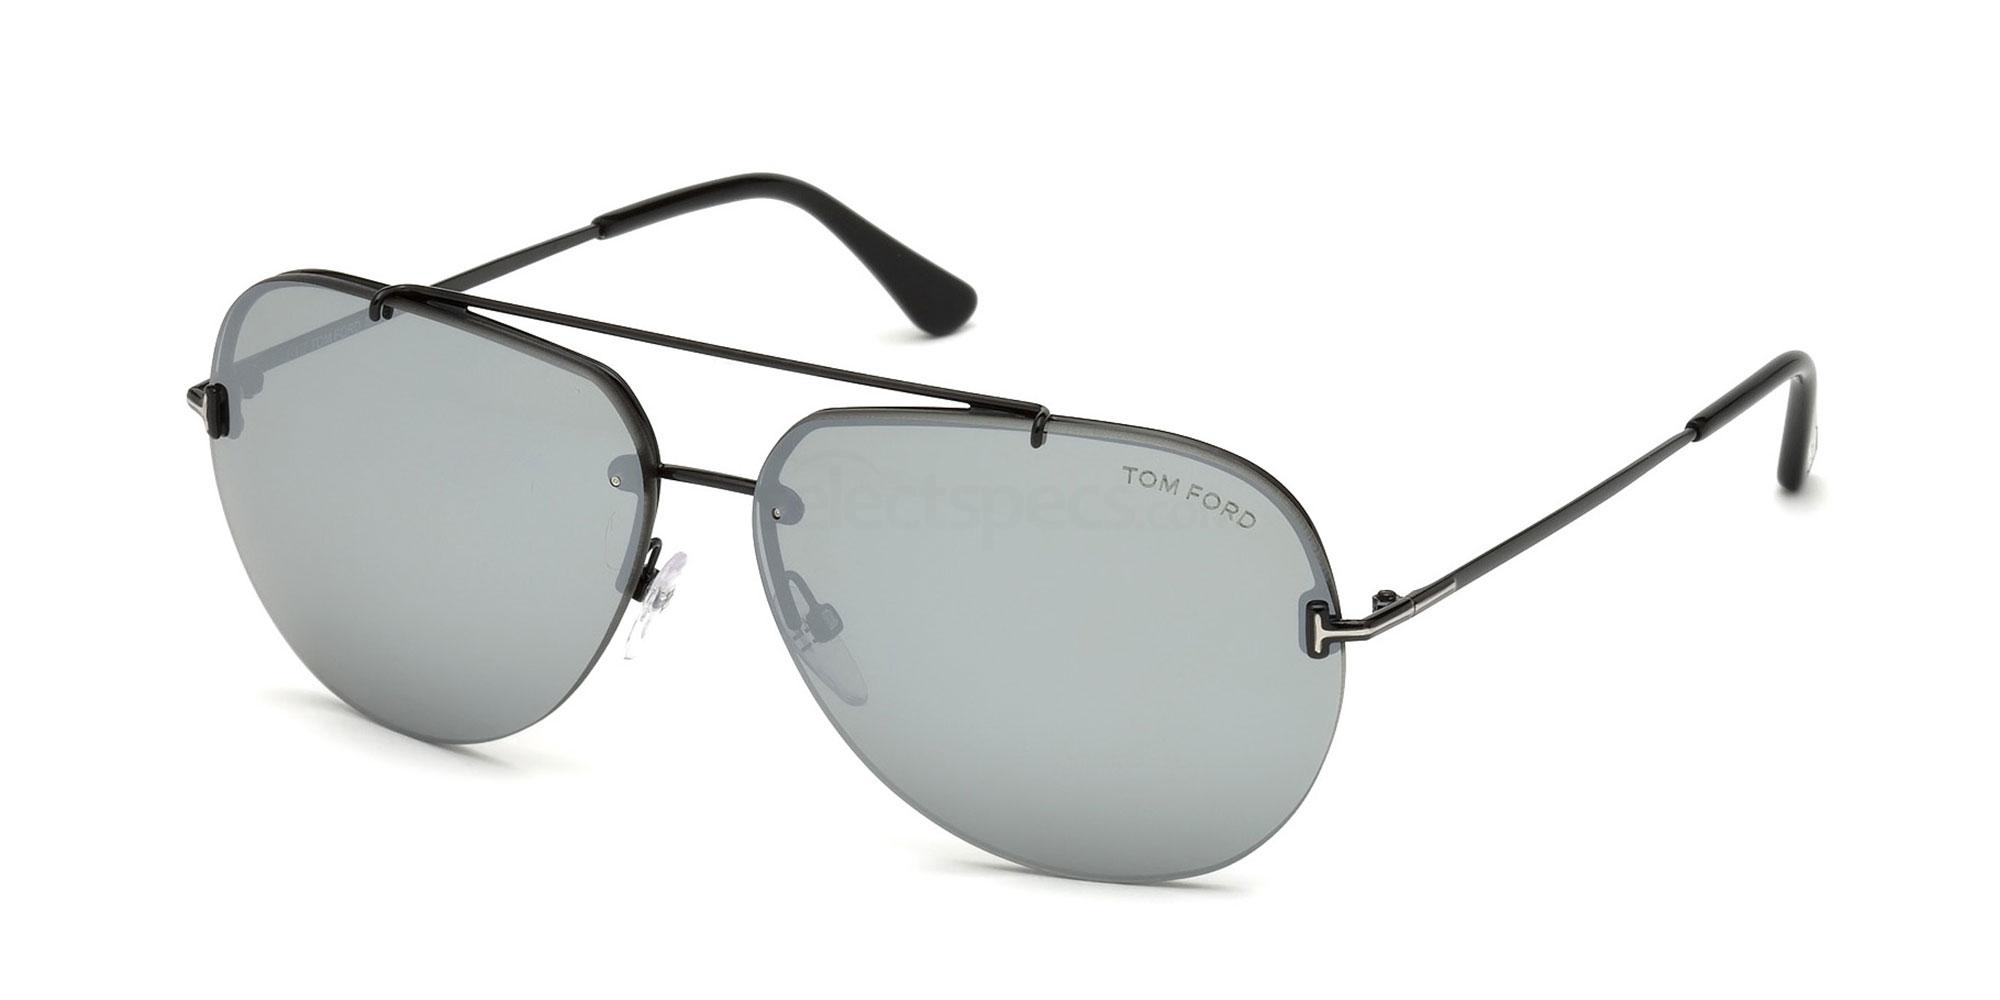 12C FT0584 Sunglasses, Tom Ford